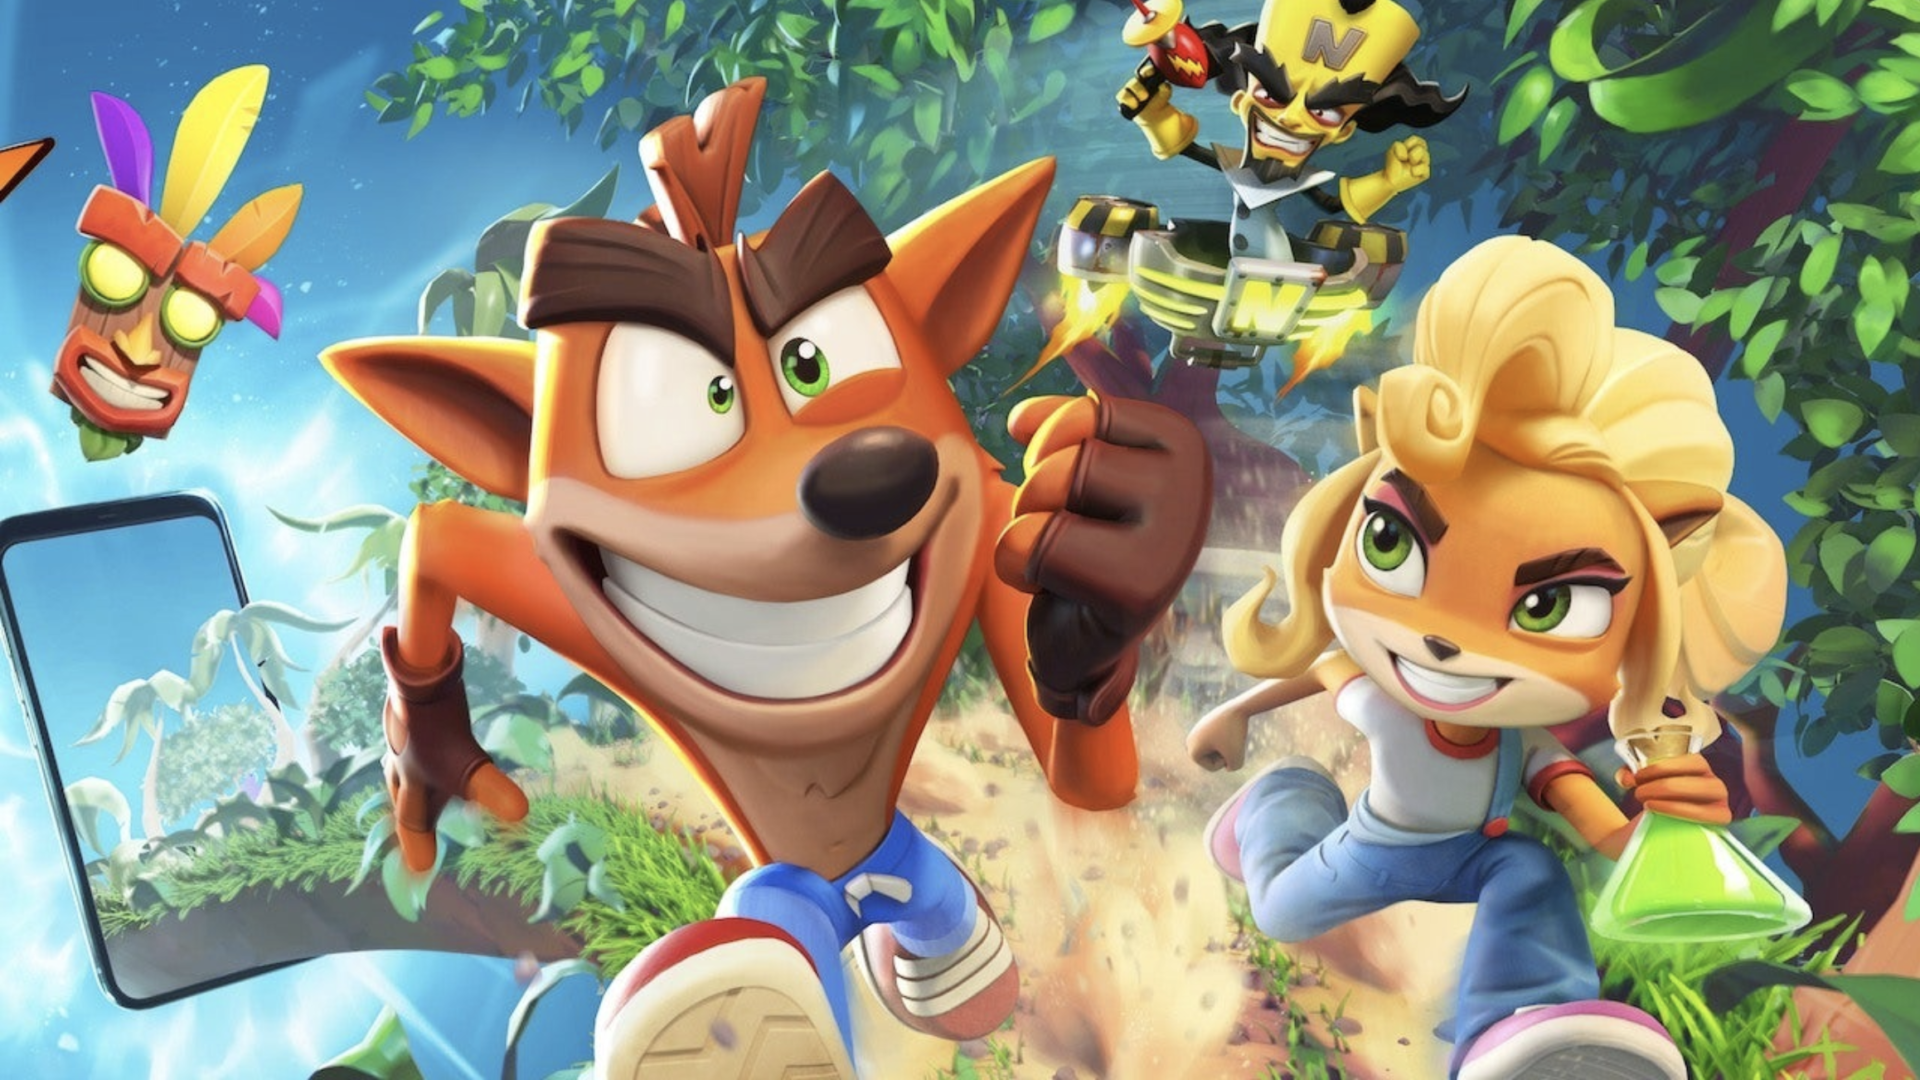 Crash Bandicoot On The Run officially announced for mobile